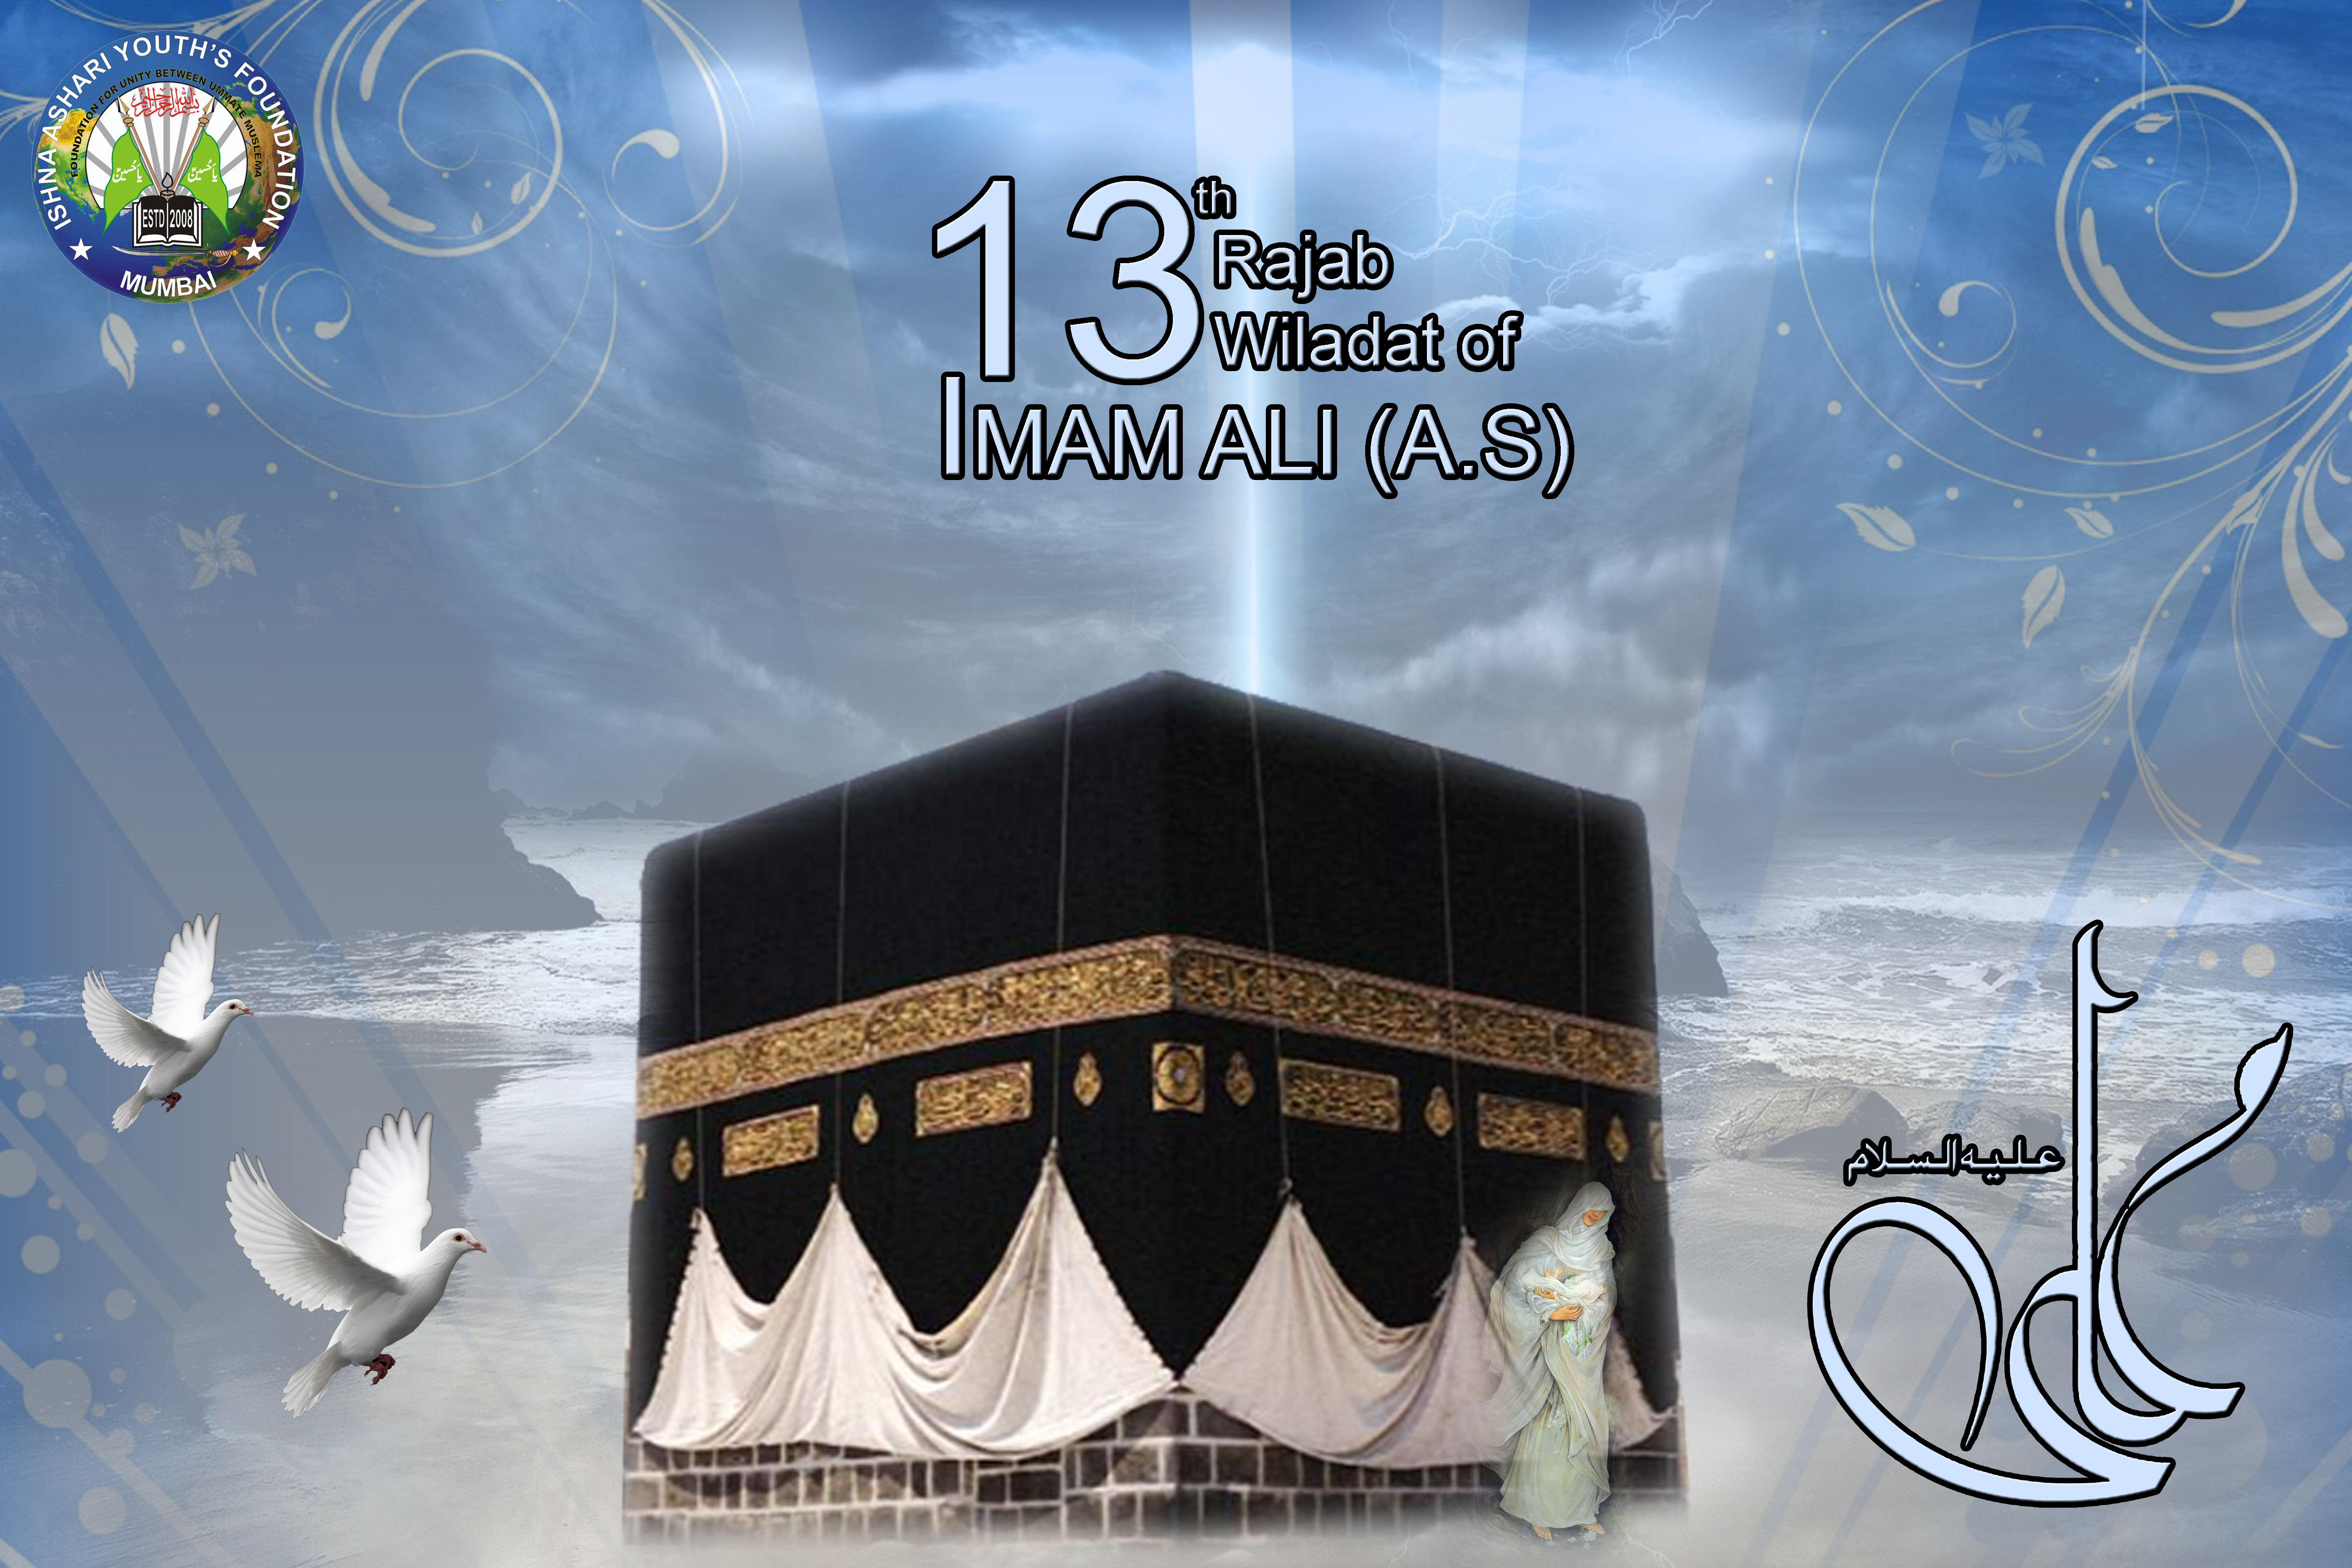 13th Rajab Wiladat of IMAM ALI (a.s.) by iayf on DeviantArt Wiladat Mola Ali Wallpapers